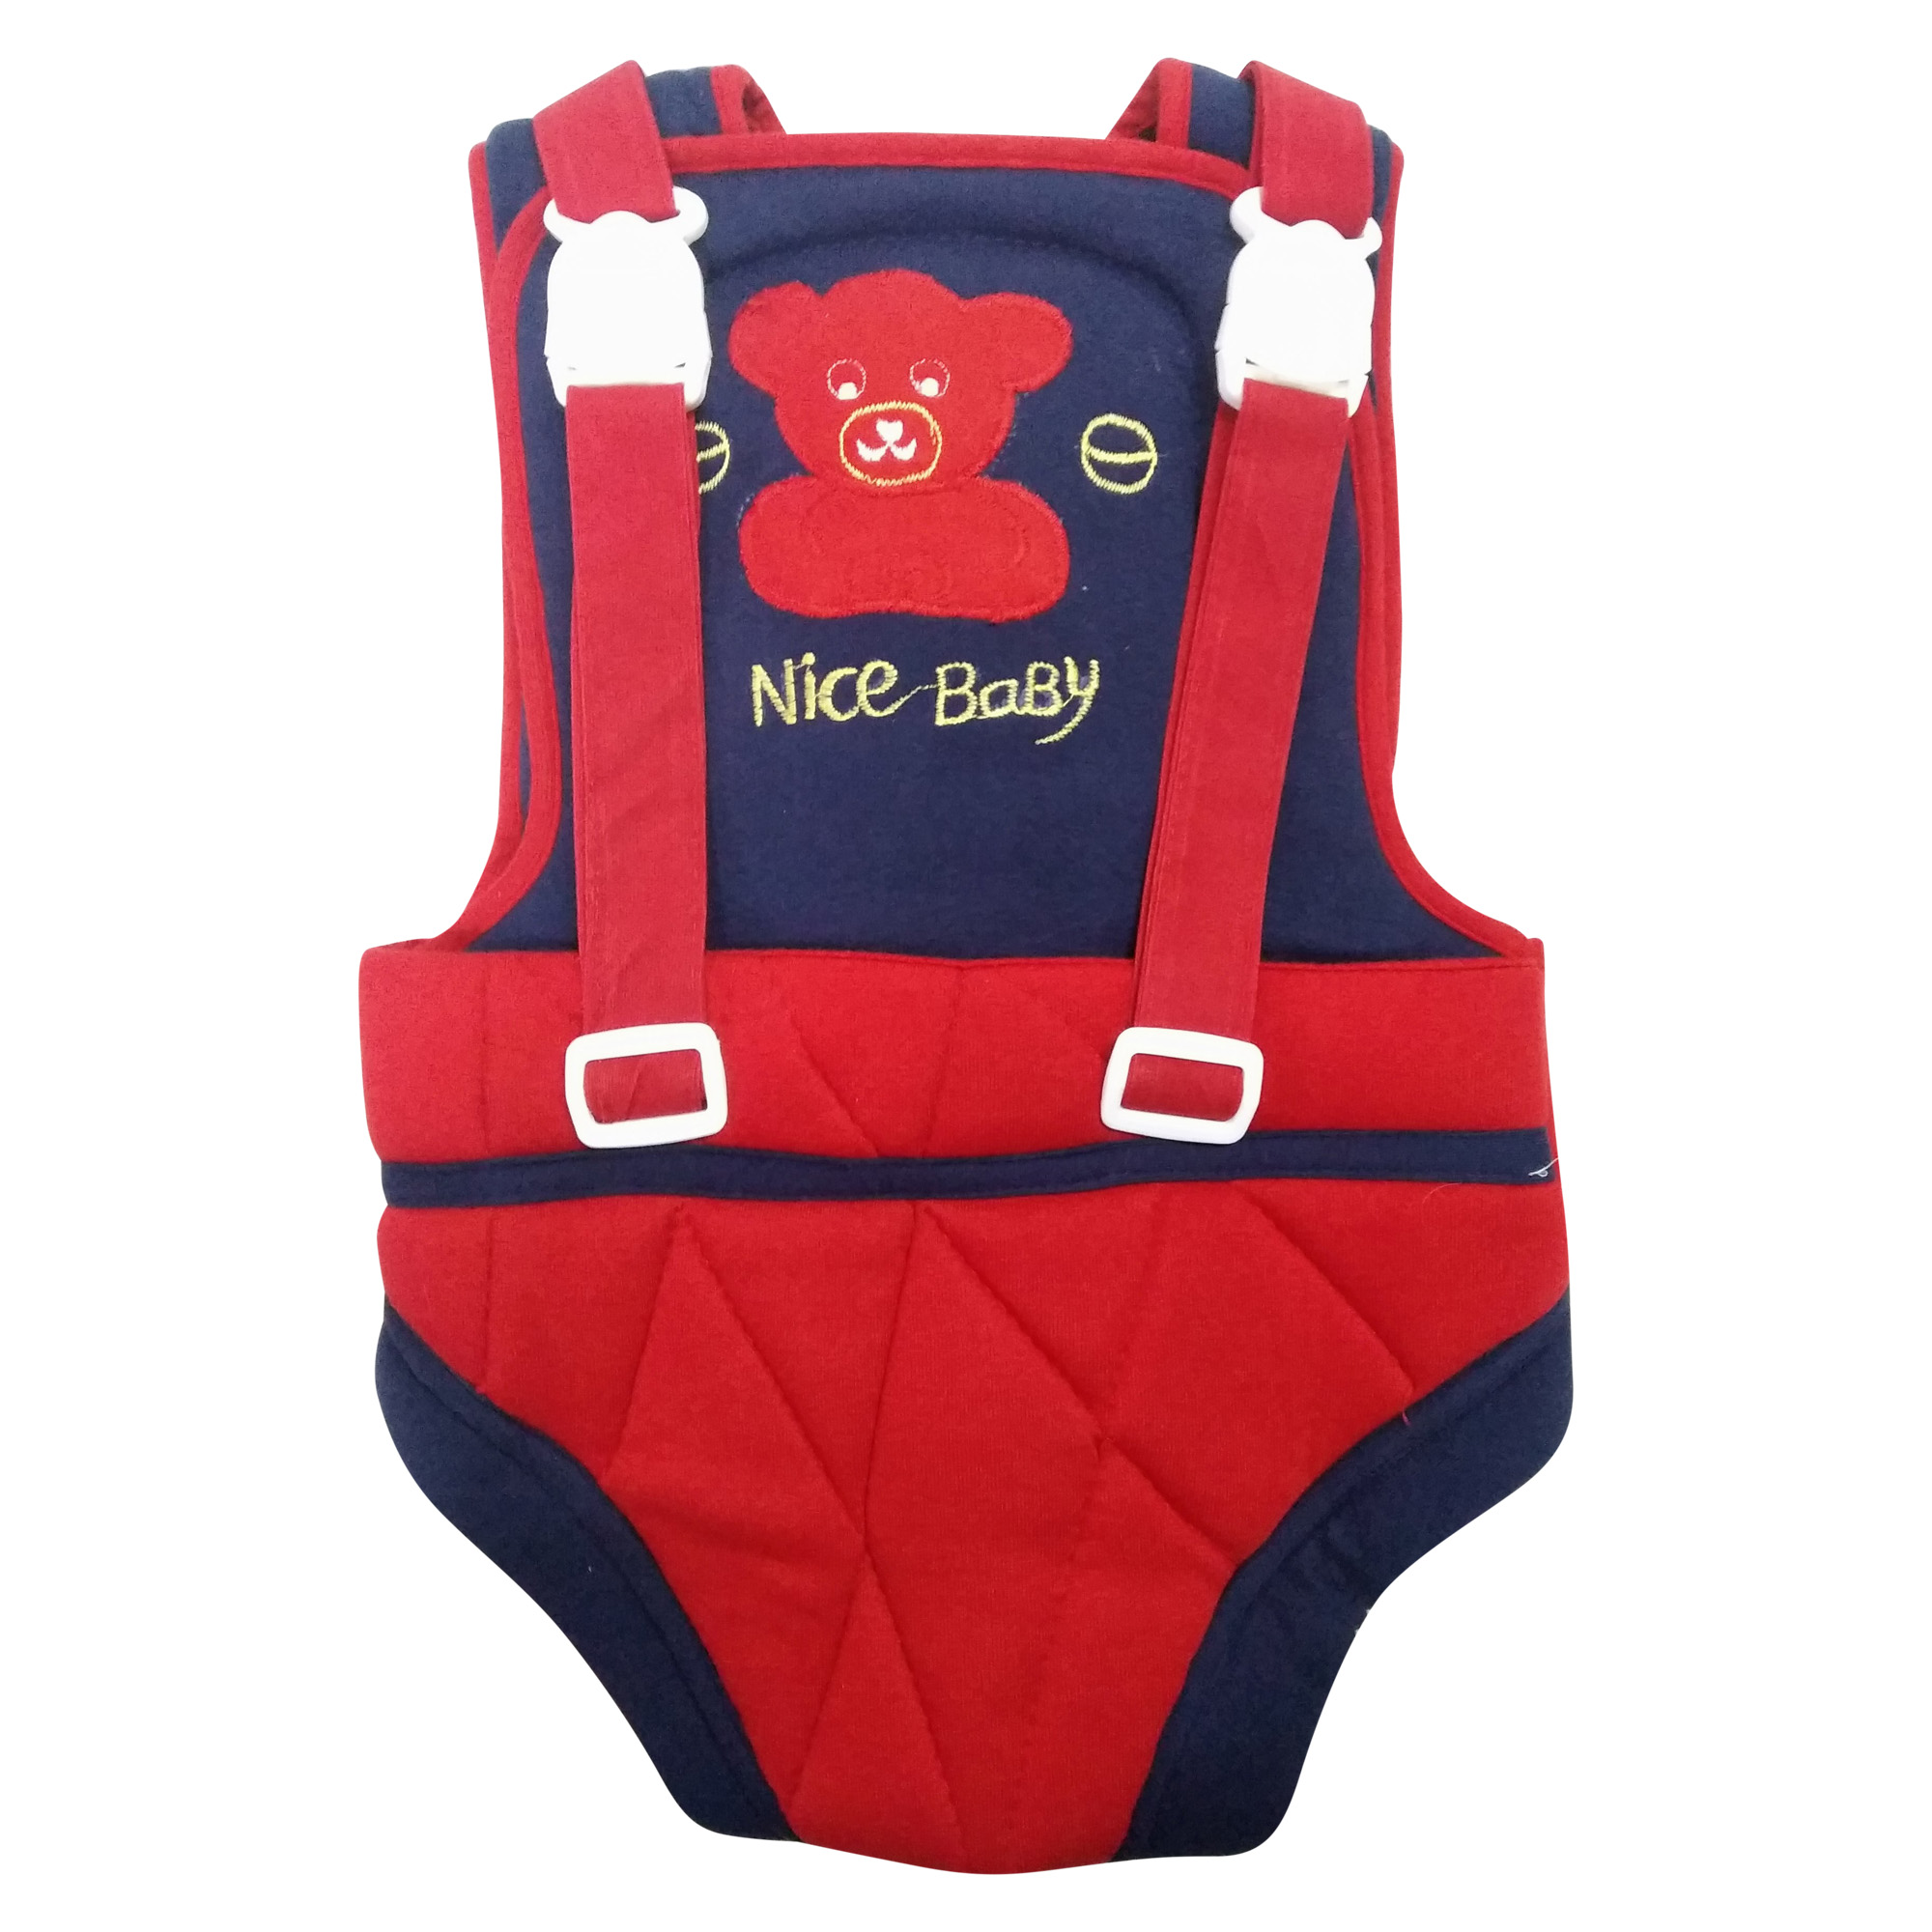 2 Way Baby Carrier Kangaroo Style - DK03 Red P3